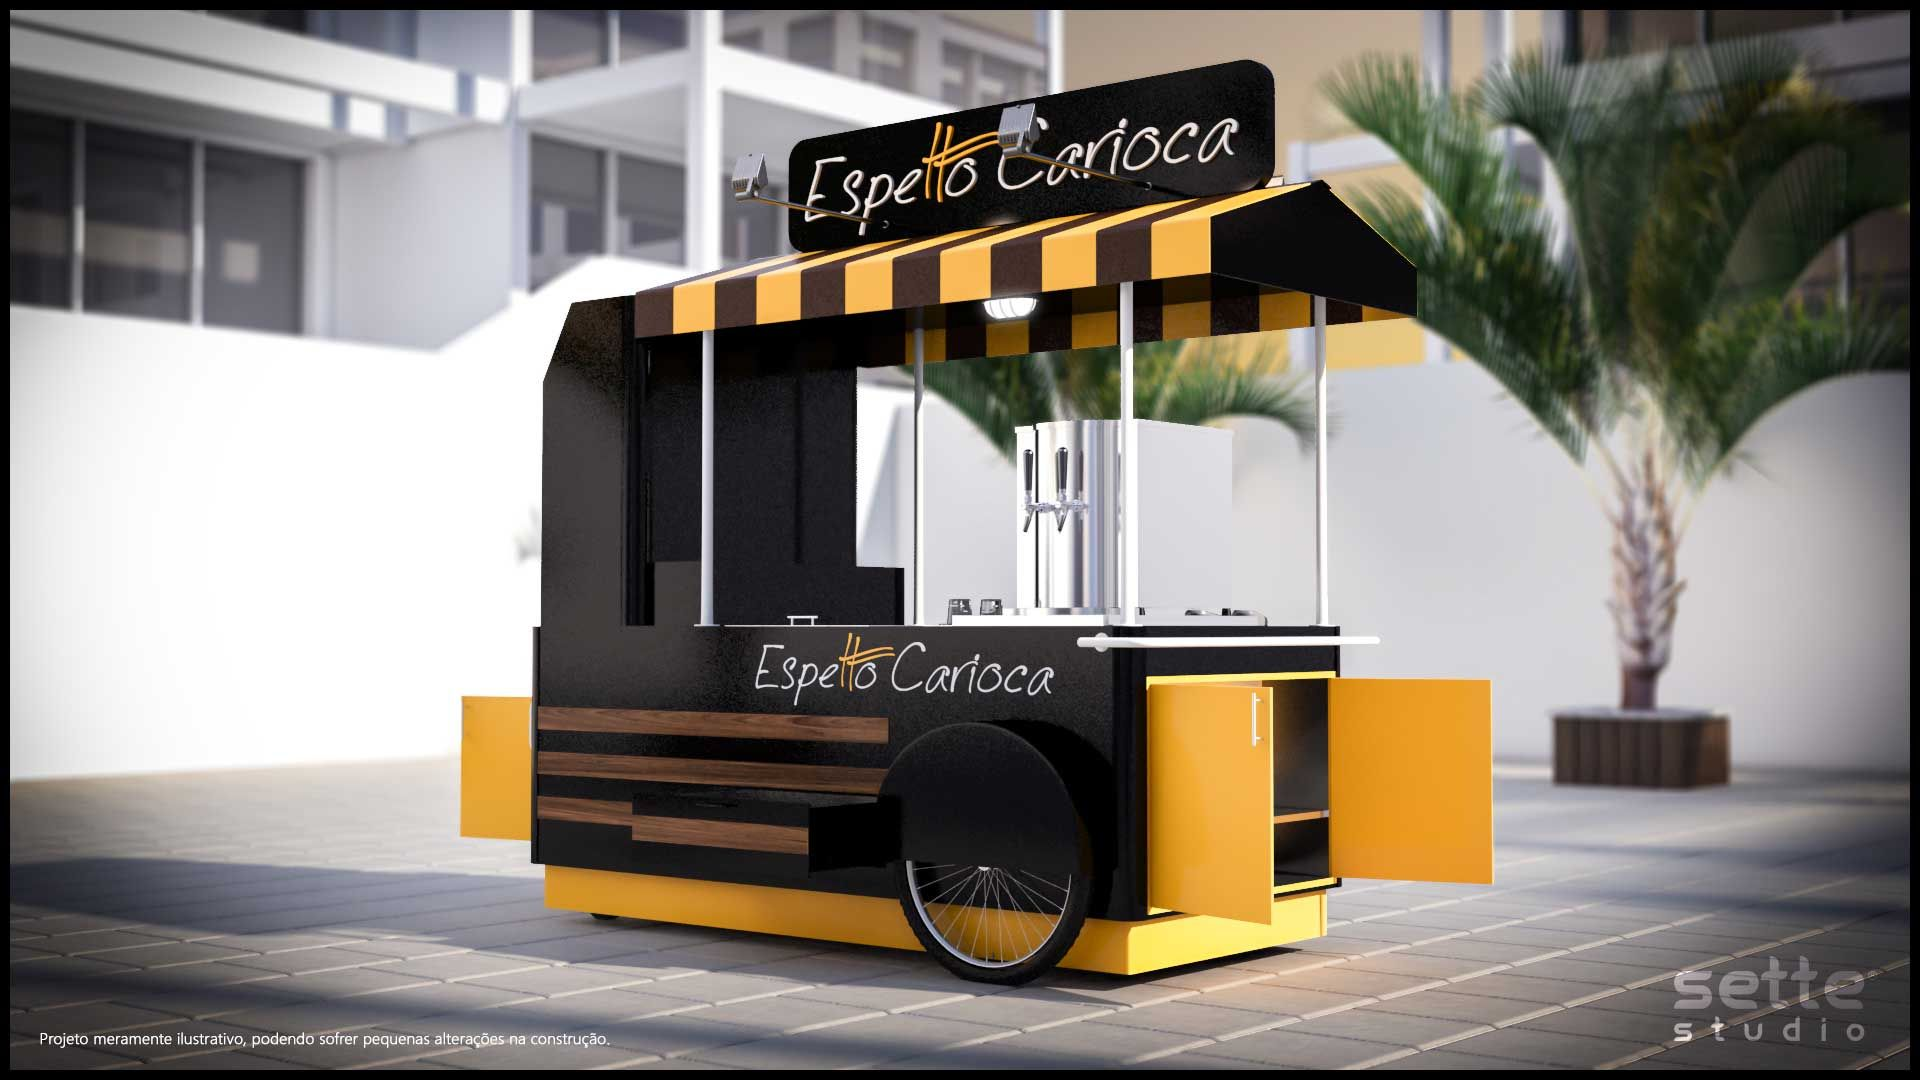 espetto carioca food bikes barra movil quiosco e comida. Black Bedroom Furniture Sets. Home Design Ideas